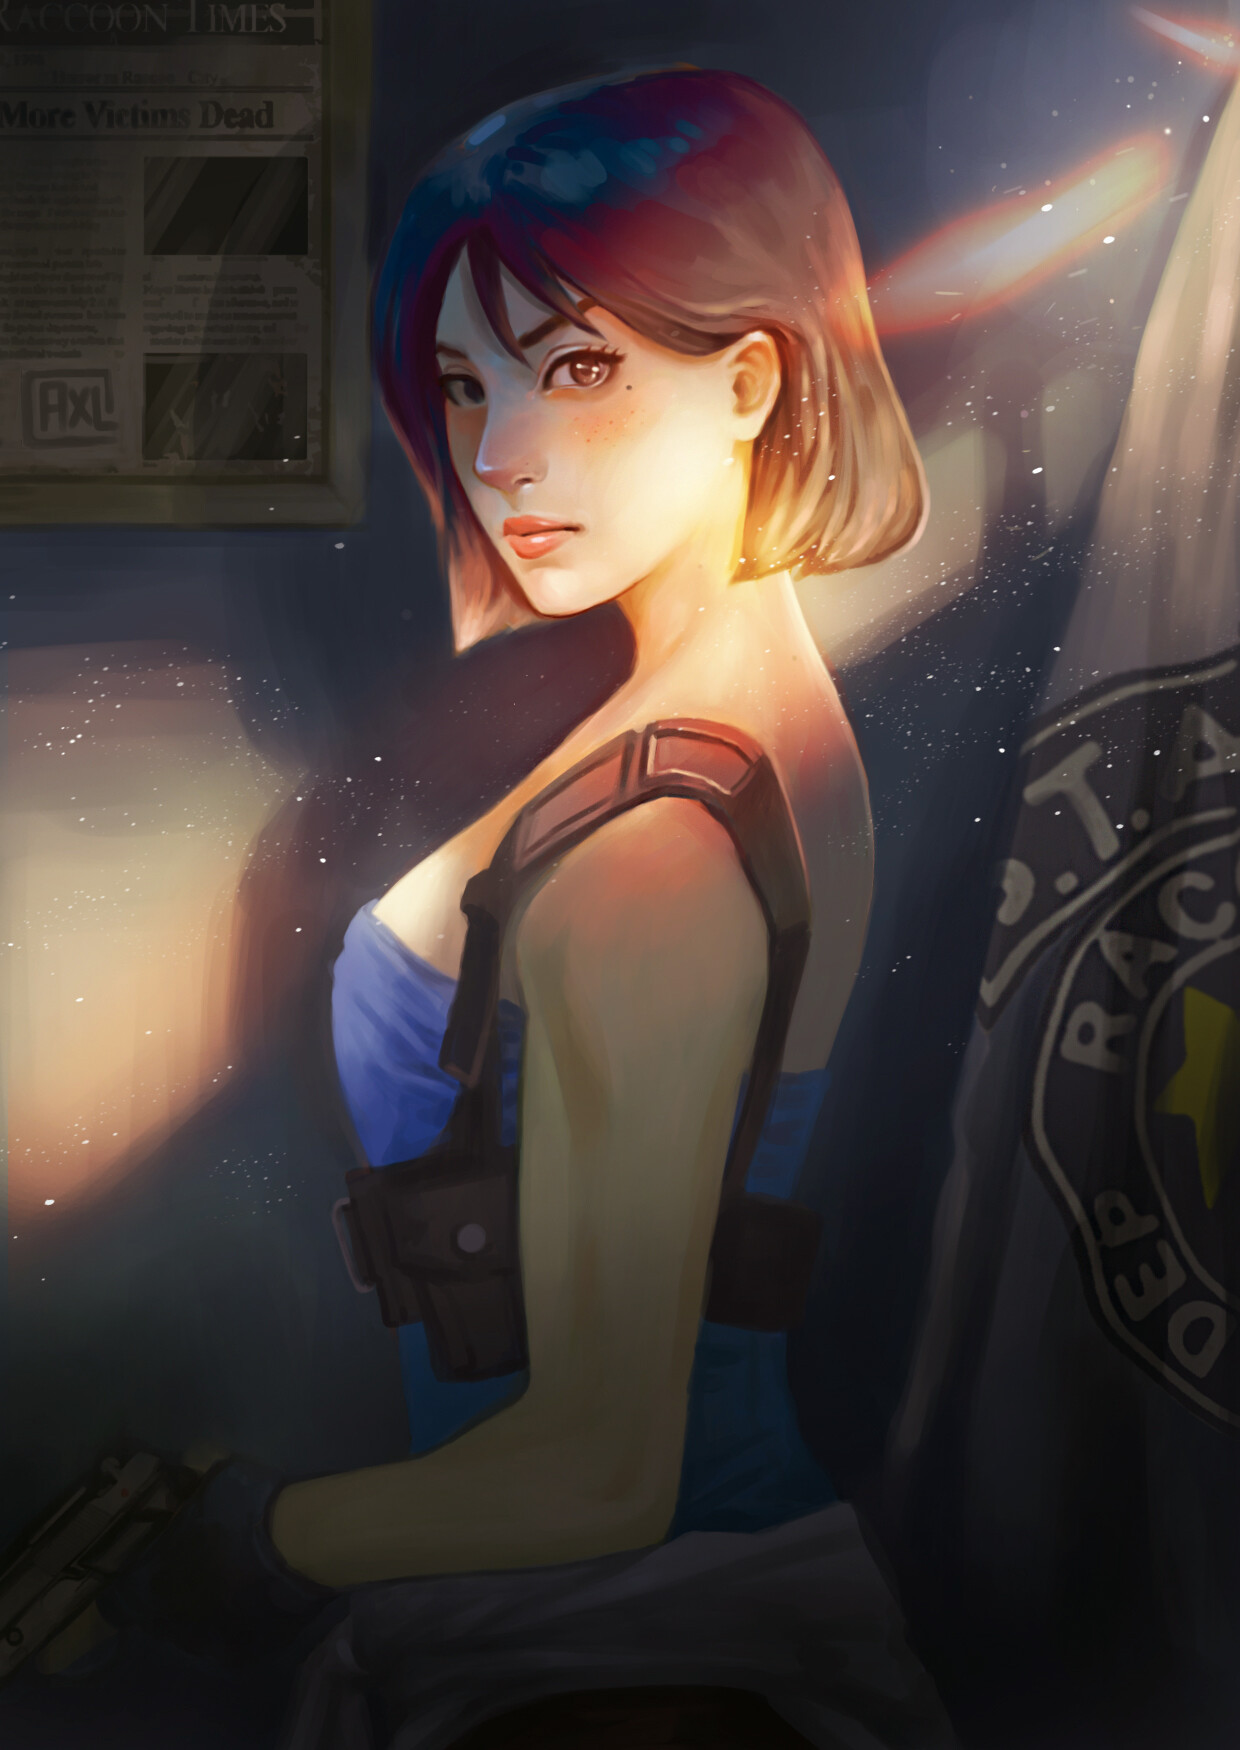 General 1240x1750 Jill Valentine Resident Evil 3 Remake Capcom S.T.A.R.S Resident Evil 2 Resident Evil 4 Resident Evil 5 Claire Redfield Ada Wong